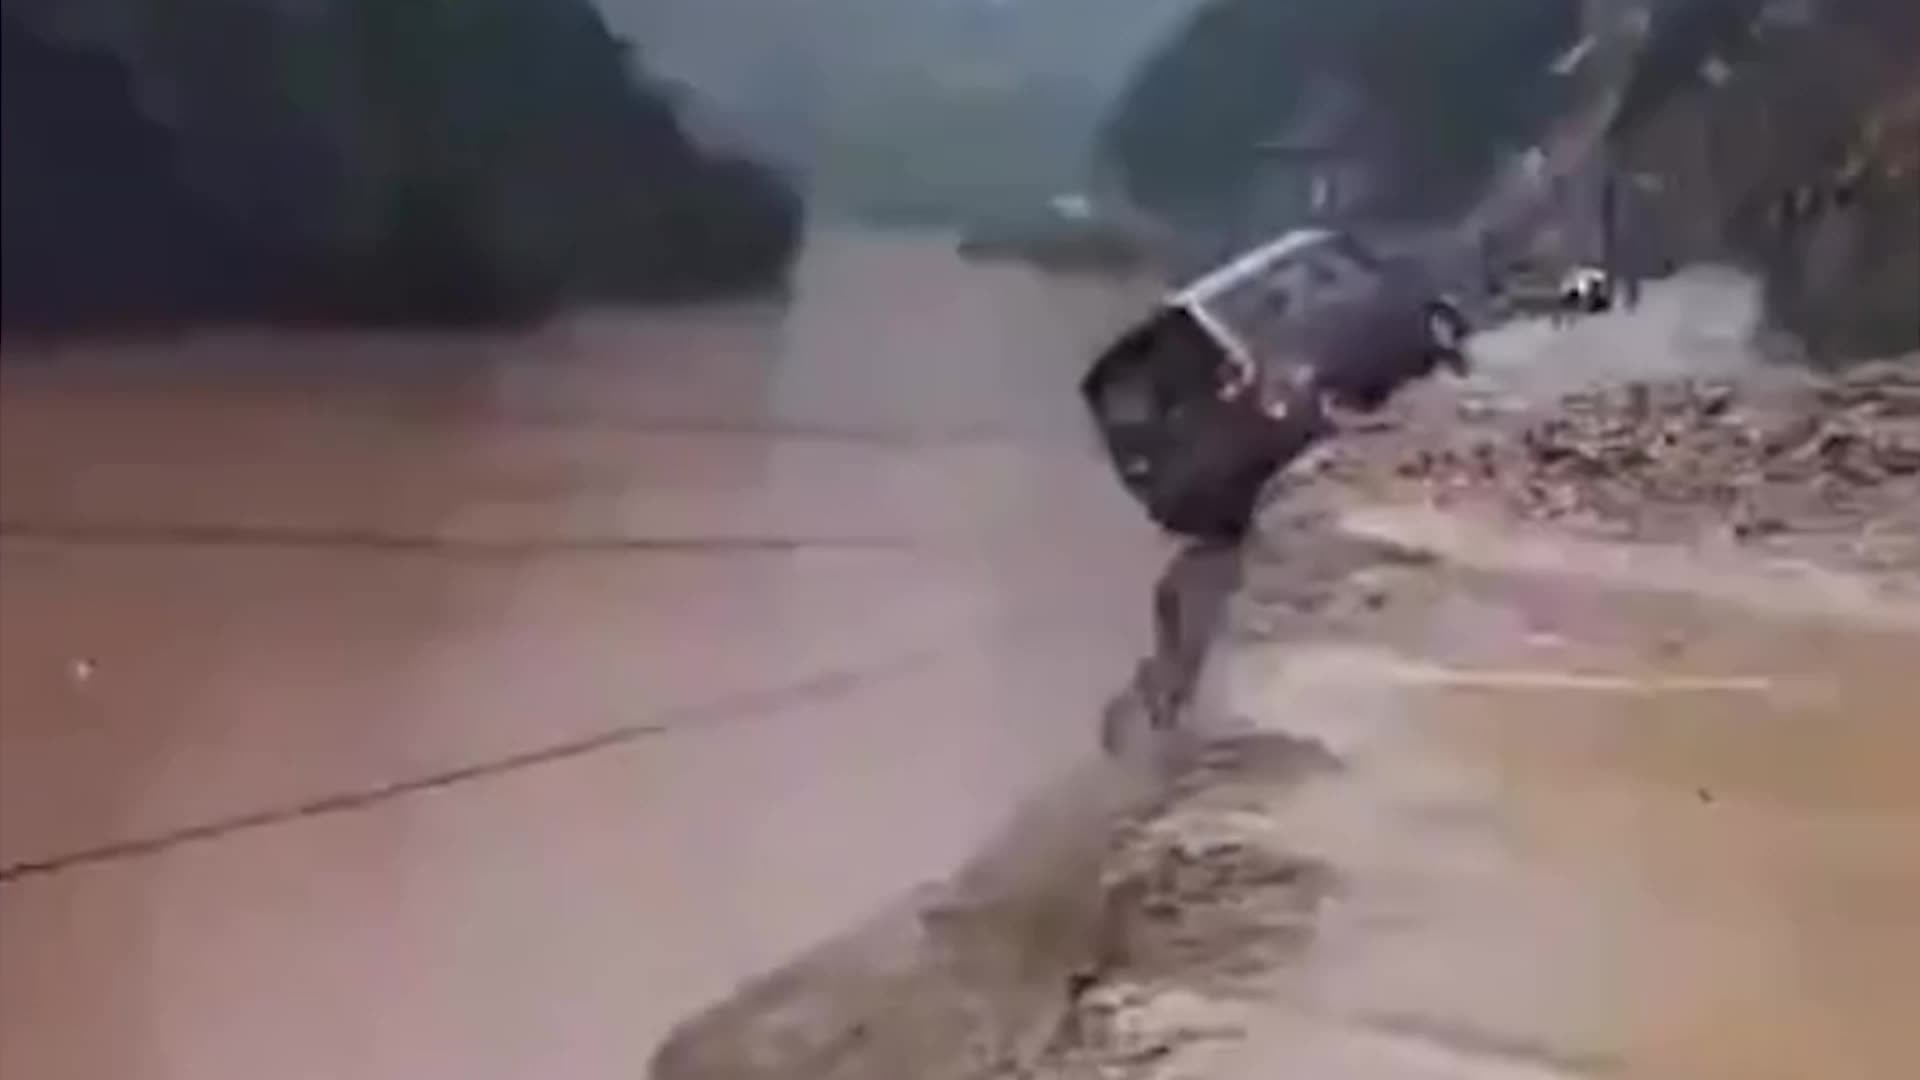 Residents flee as torrents of mud and debris tear through southwestern China, sweeping away cars and everything else in its path.